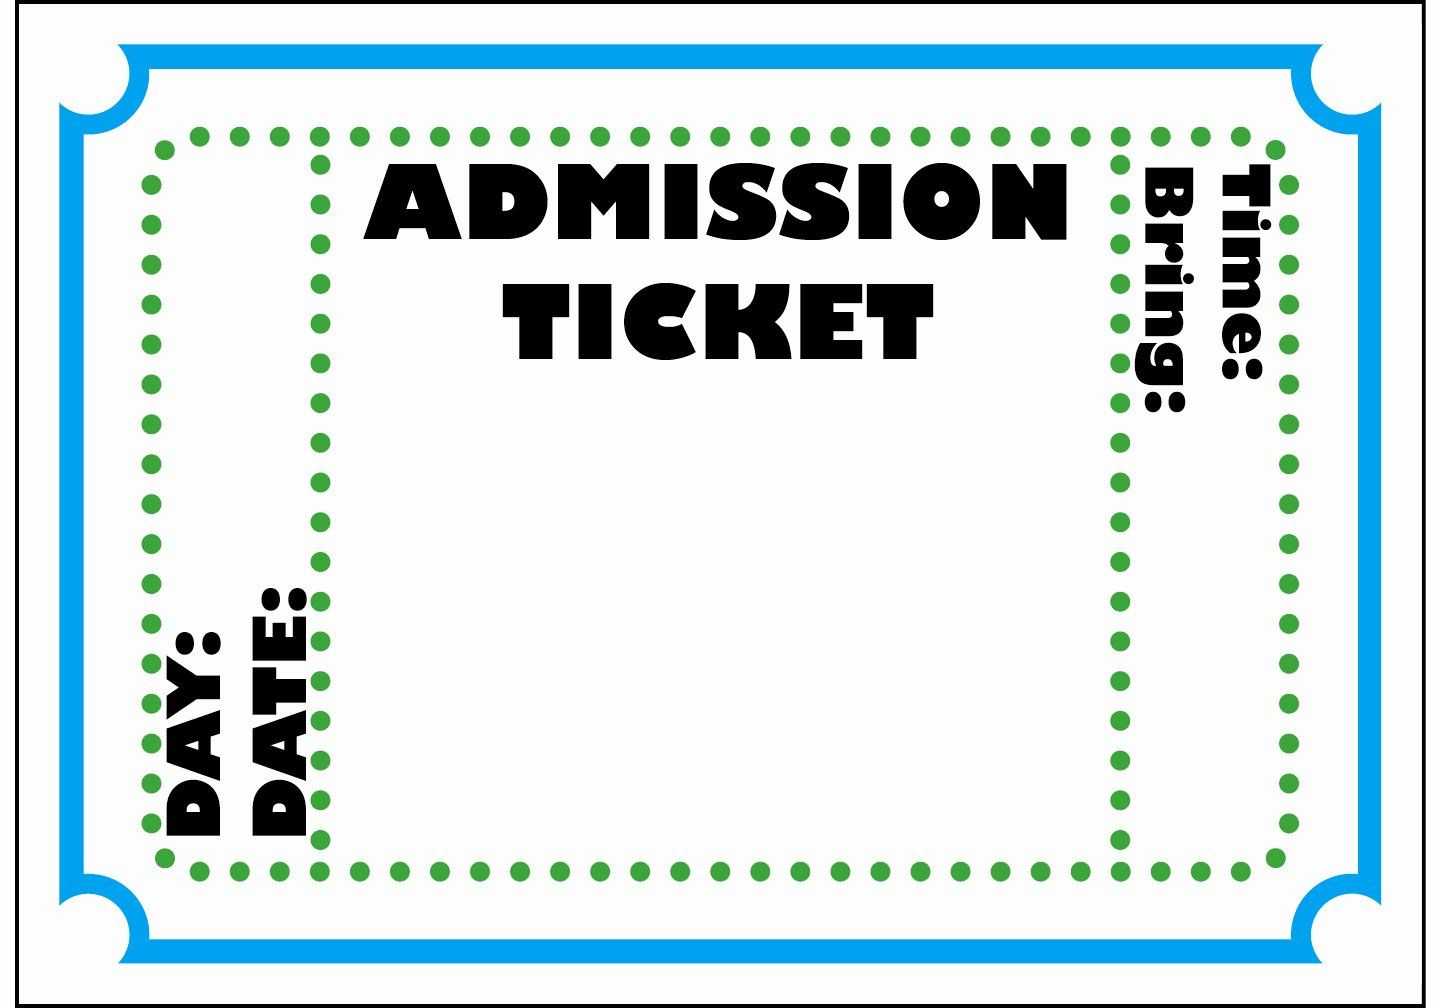 Free Ticket Template Printable Lovely Movie Ticket Template Ticket Template Ticket Template Printable Movie Ticket Template Movie ticket template for word